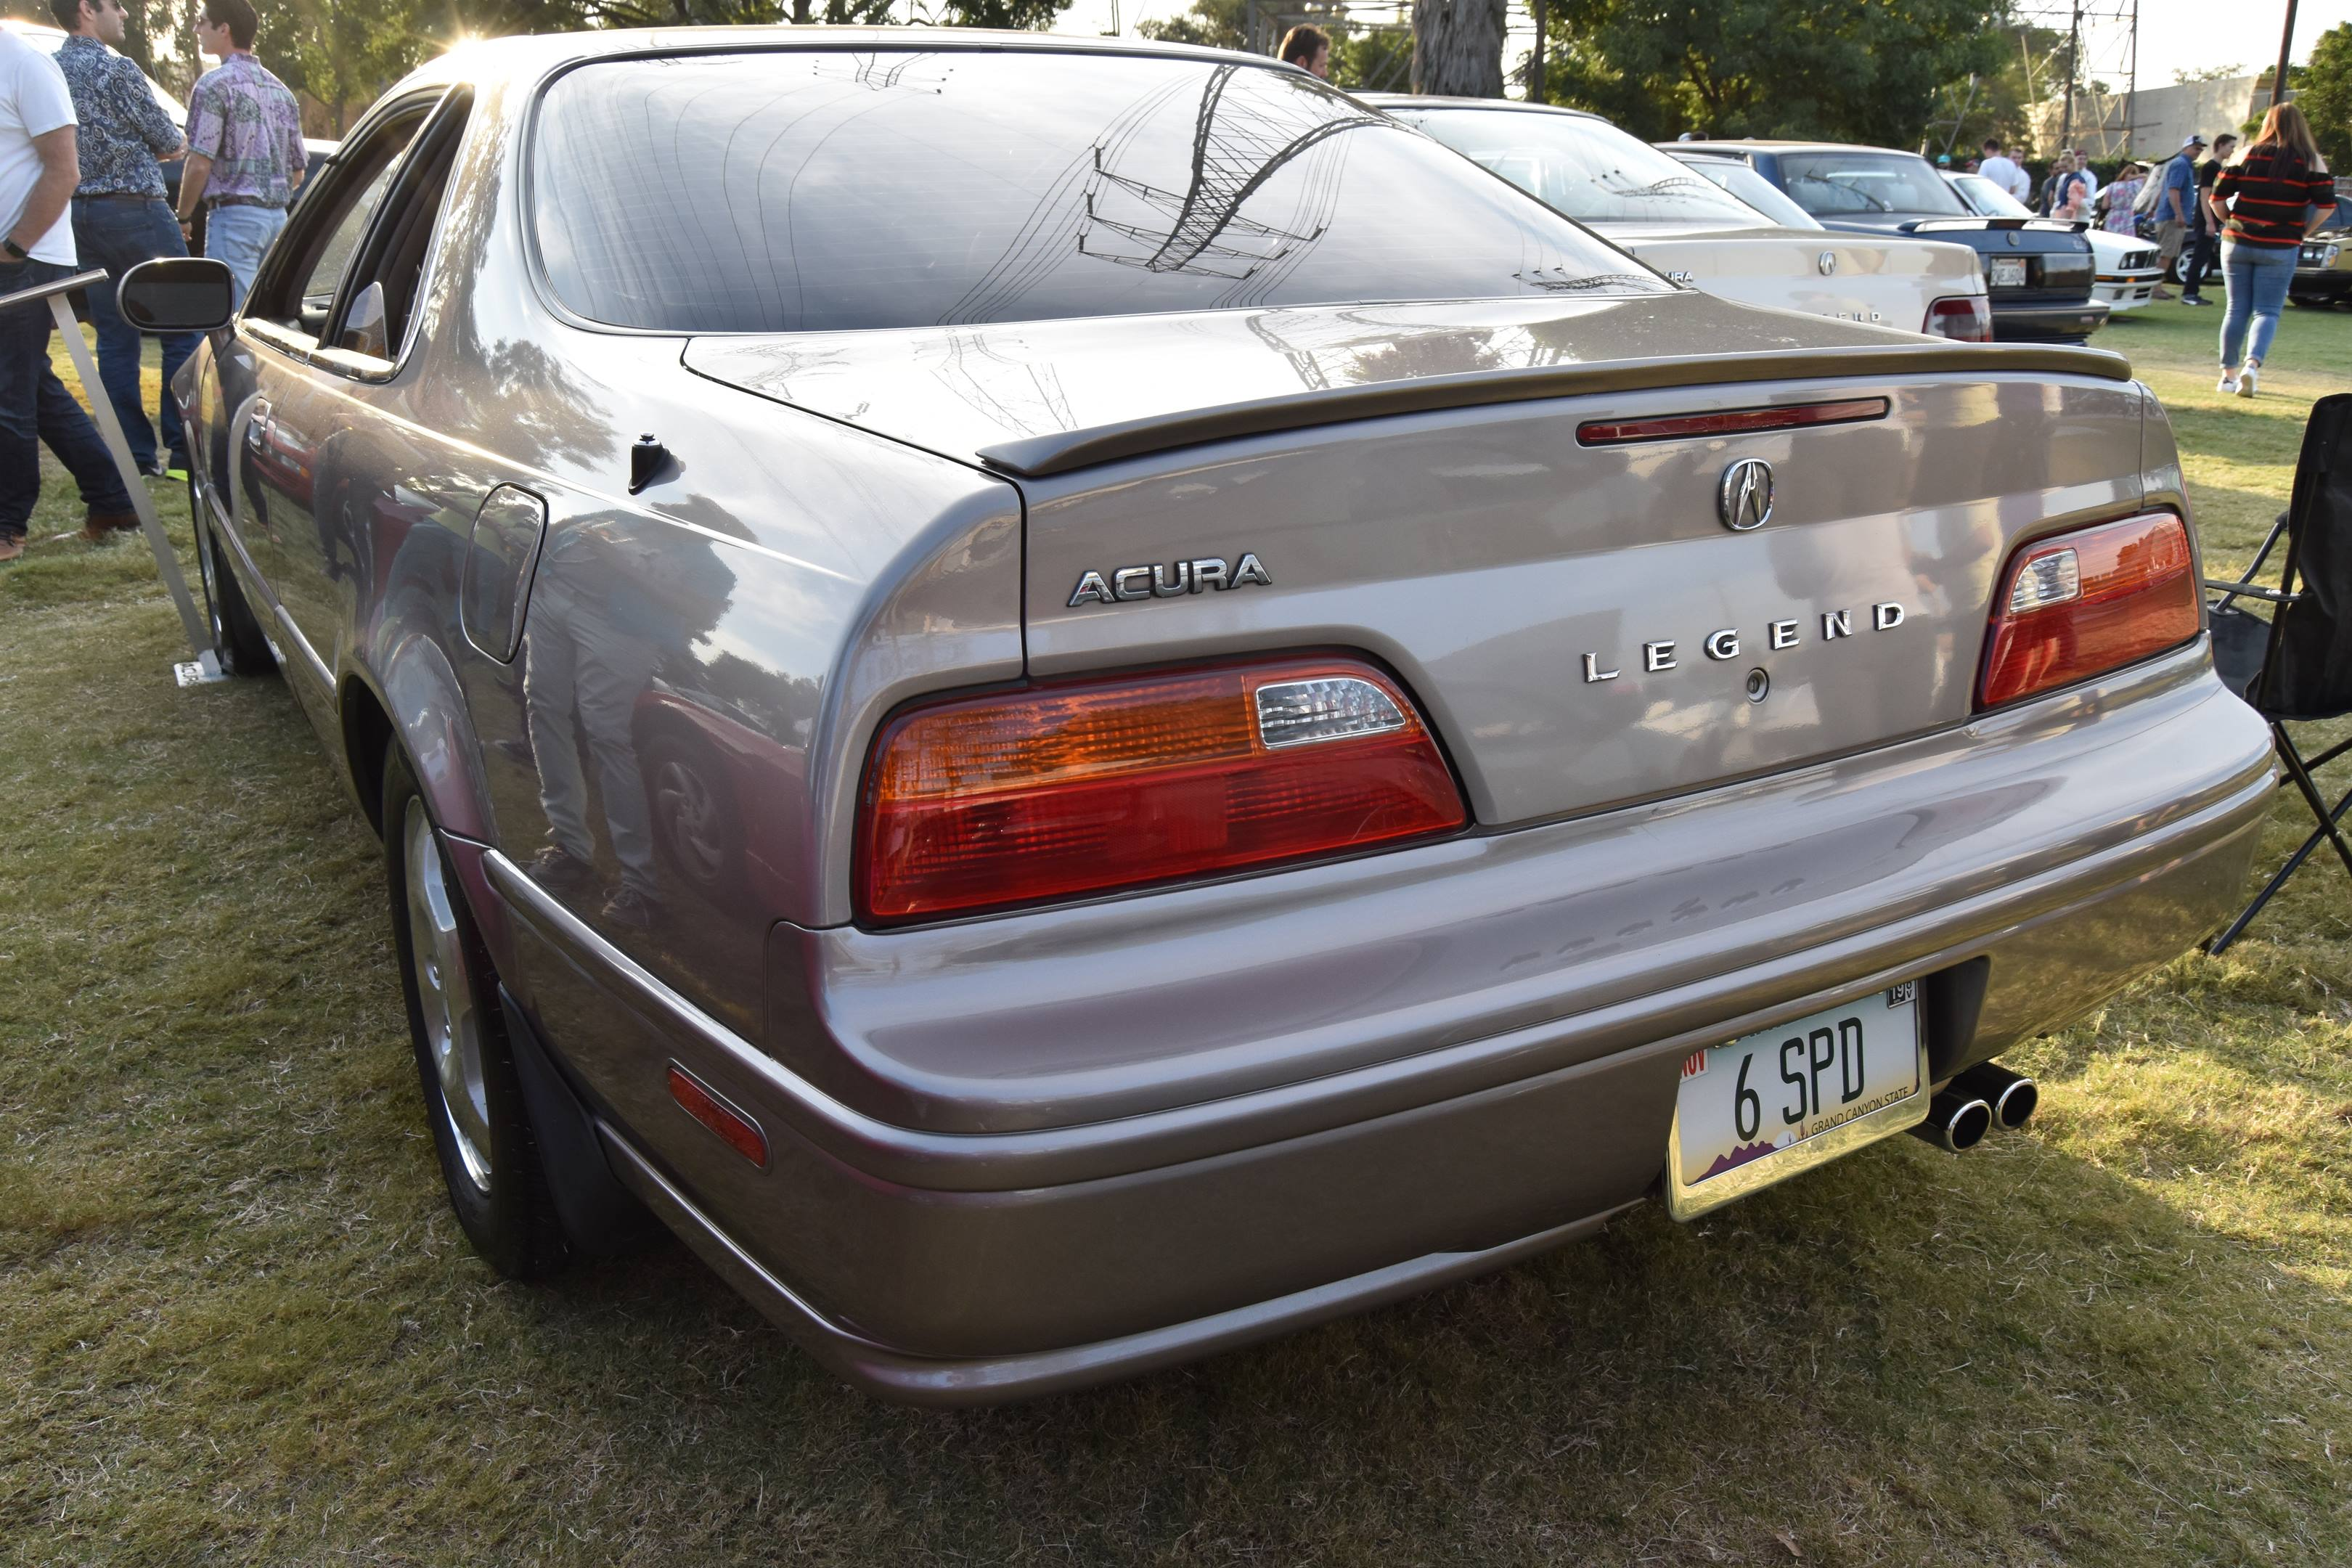 1994 Acura Legend LS Coupe rear